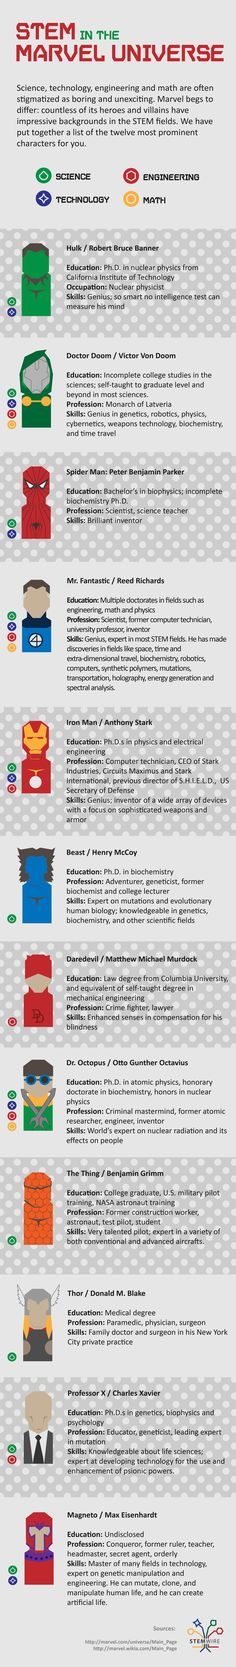 STEM Superheroes Infographic